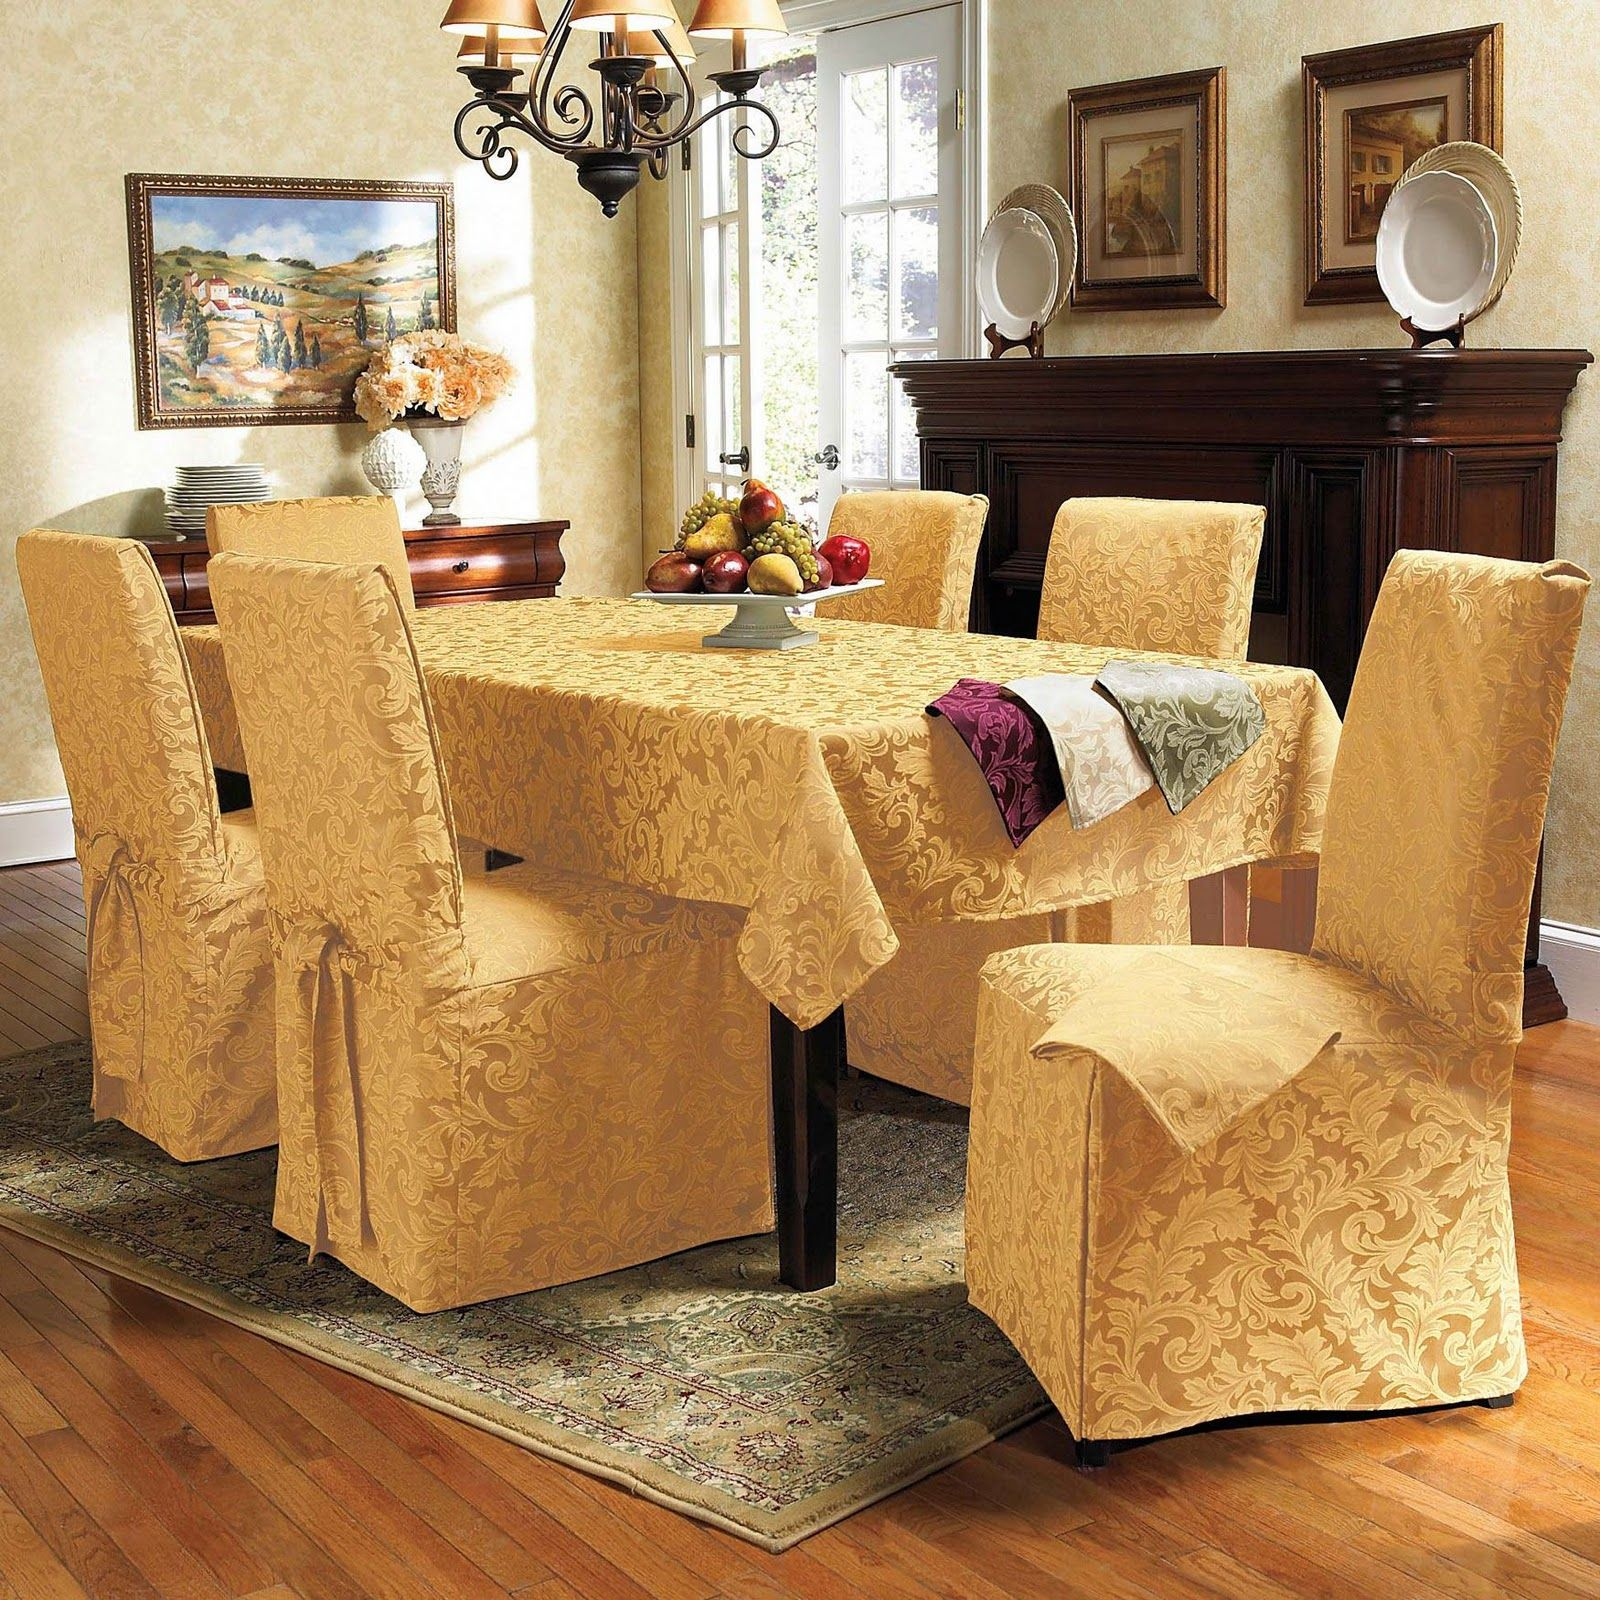 Dining Table Chair Covers Luxury dining room, Dining